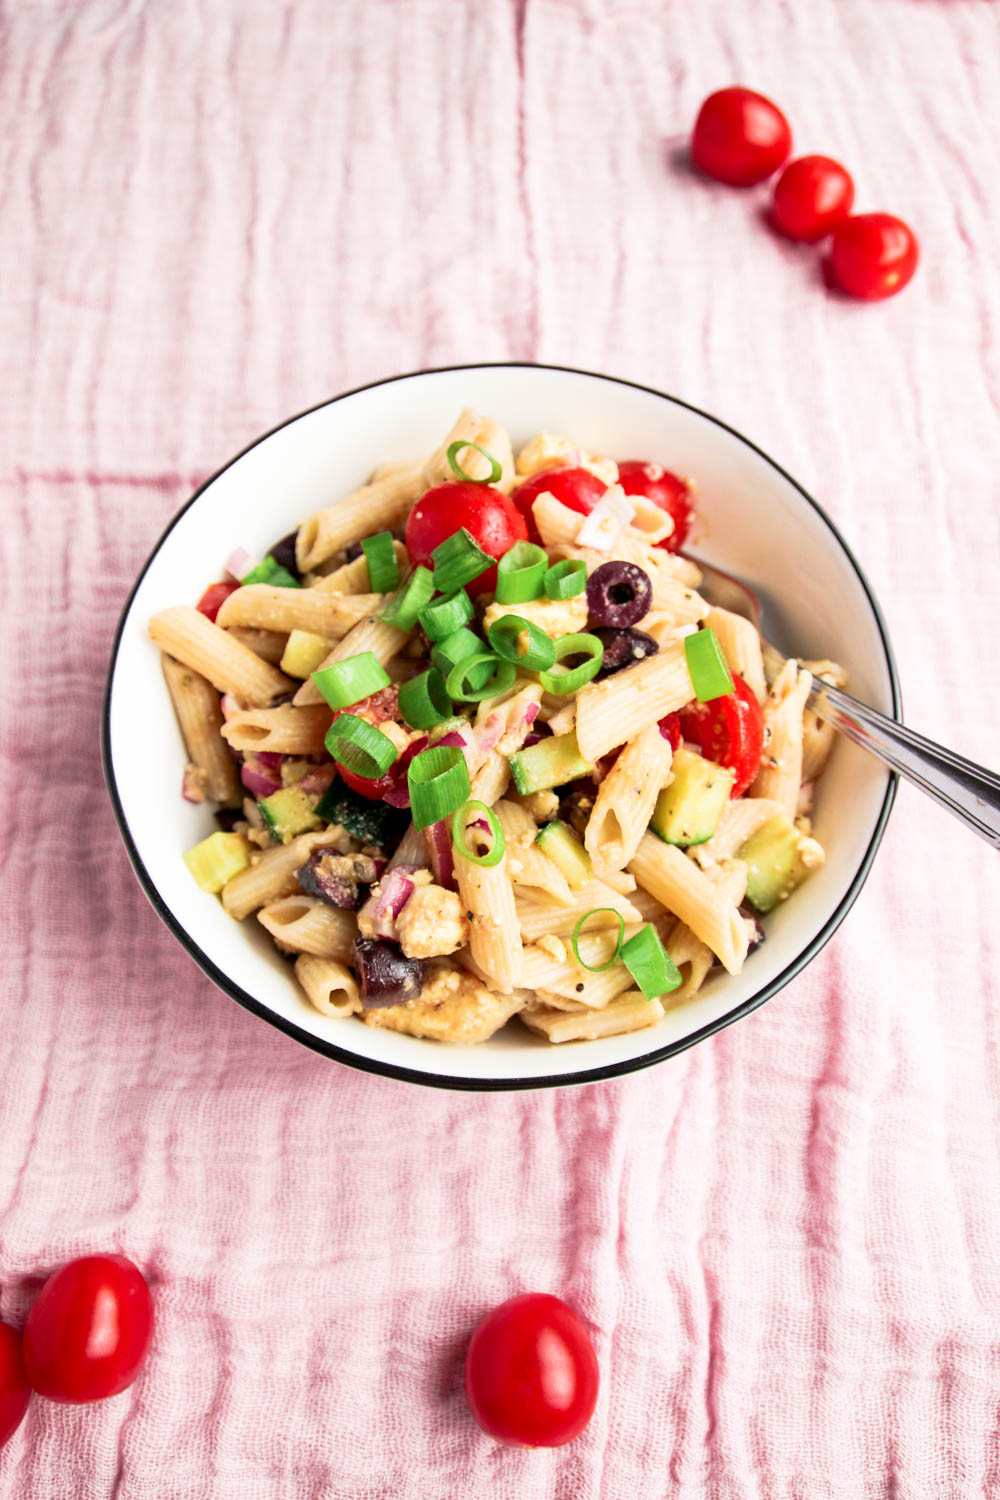 Fresh Summer Pasta Salad with tomatoes on the side.